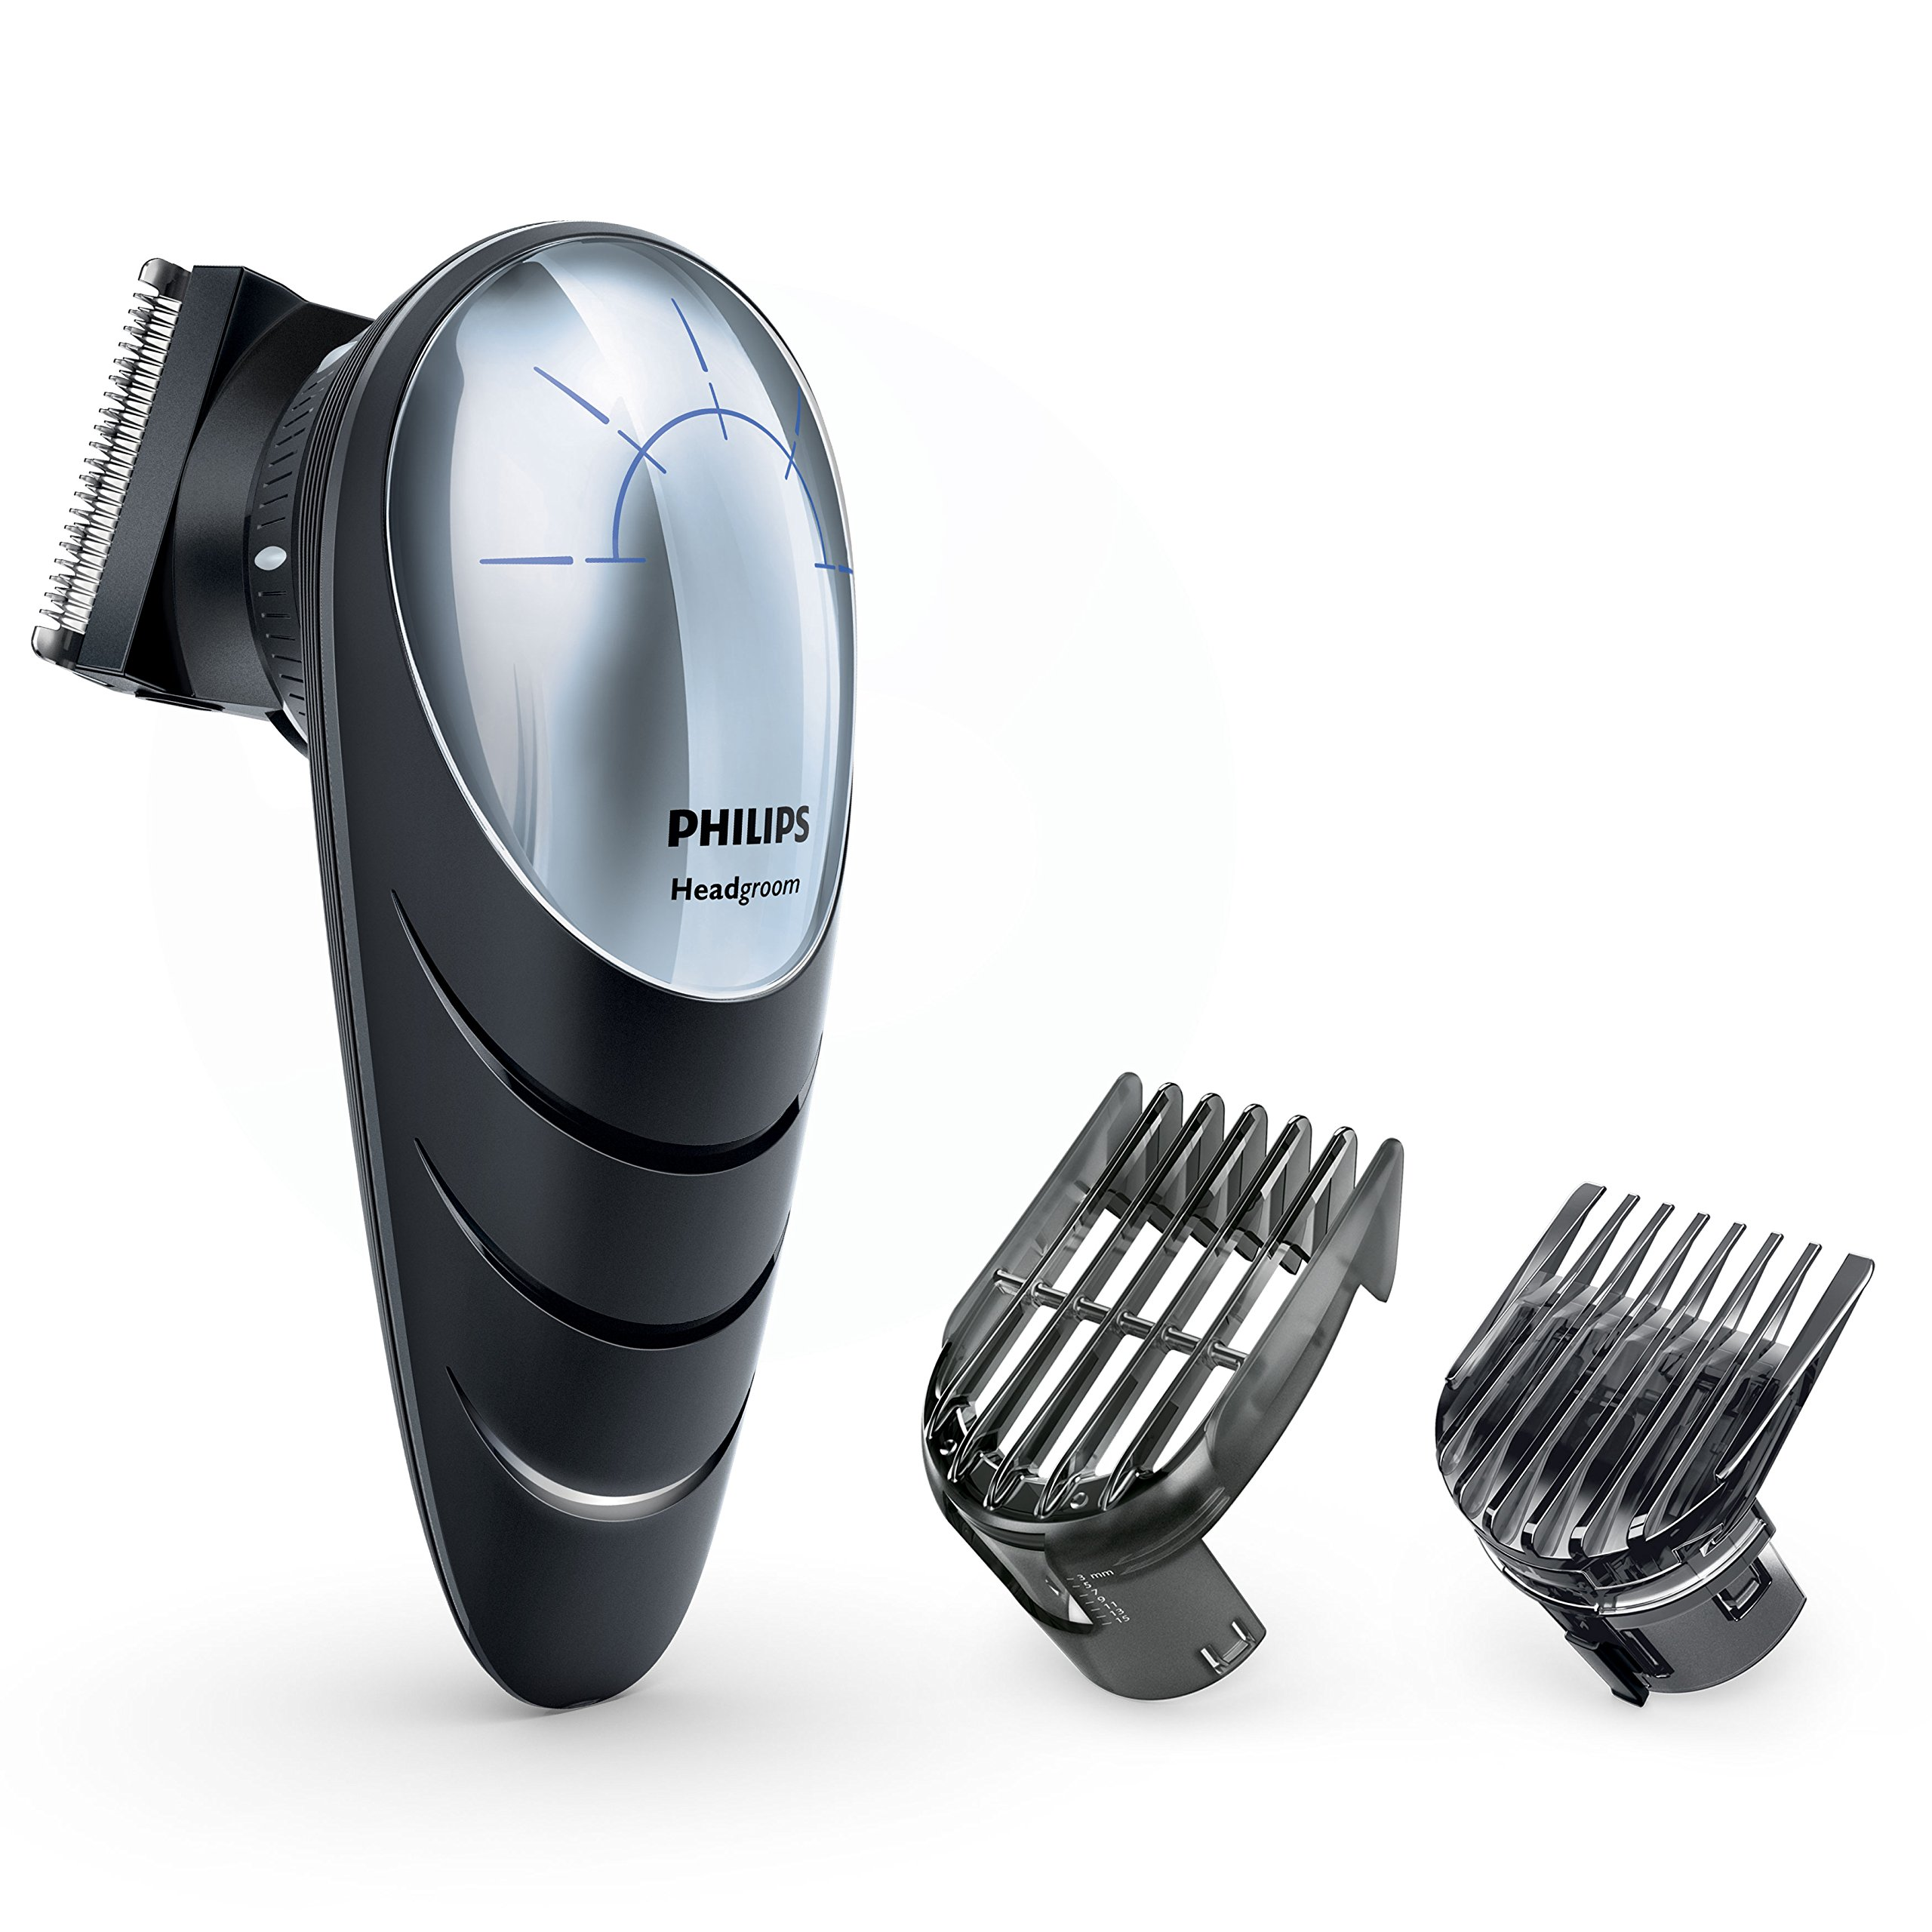 Philips Do-It-Yourself Hair Clipper with 180 Degree Rotating Head for Easy Reach - QC5570/13 product image